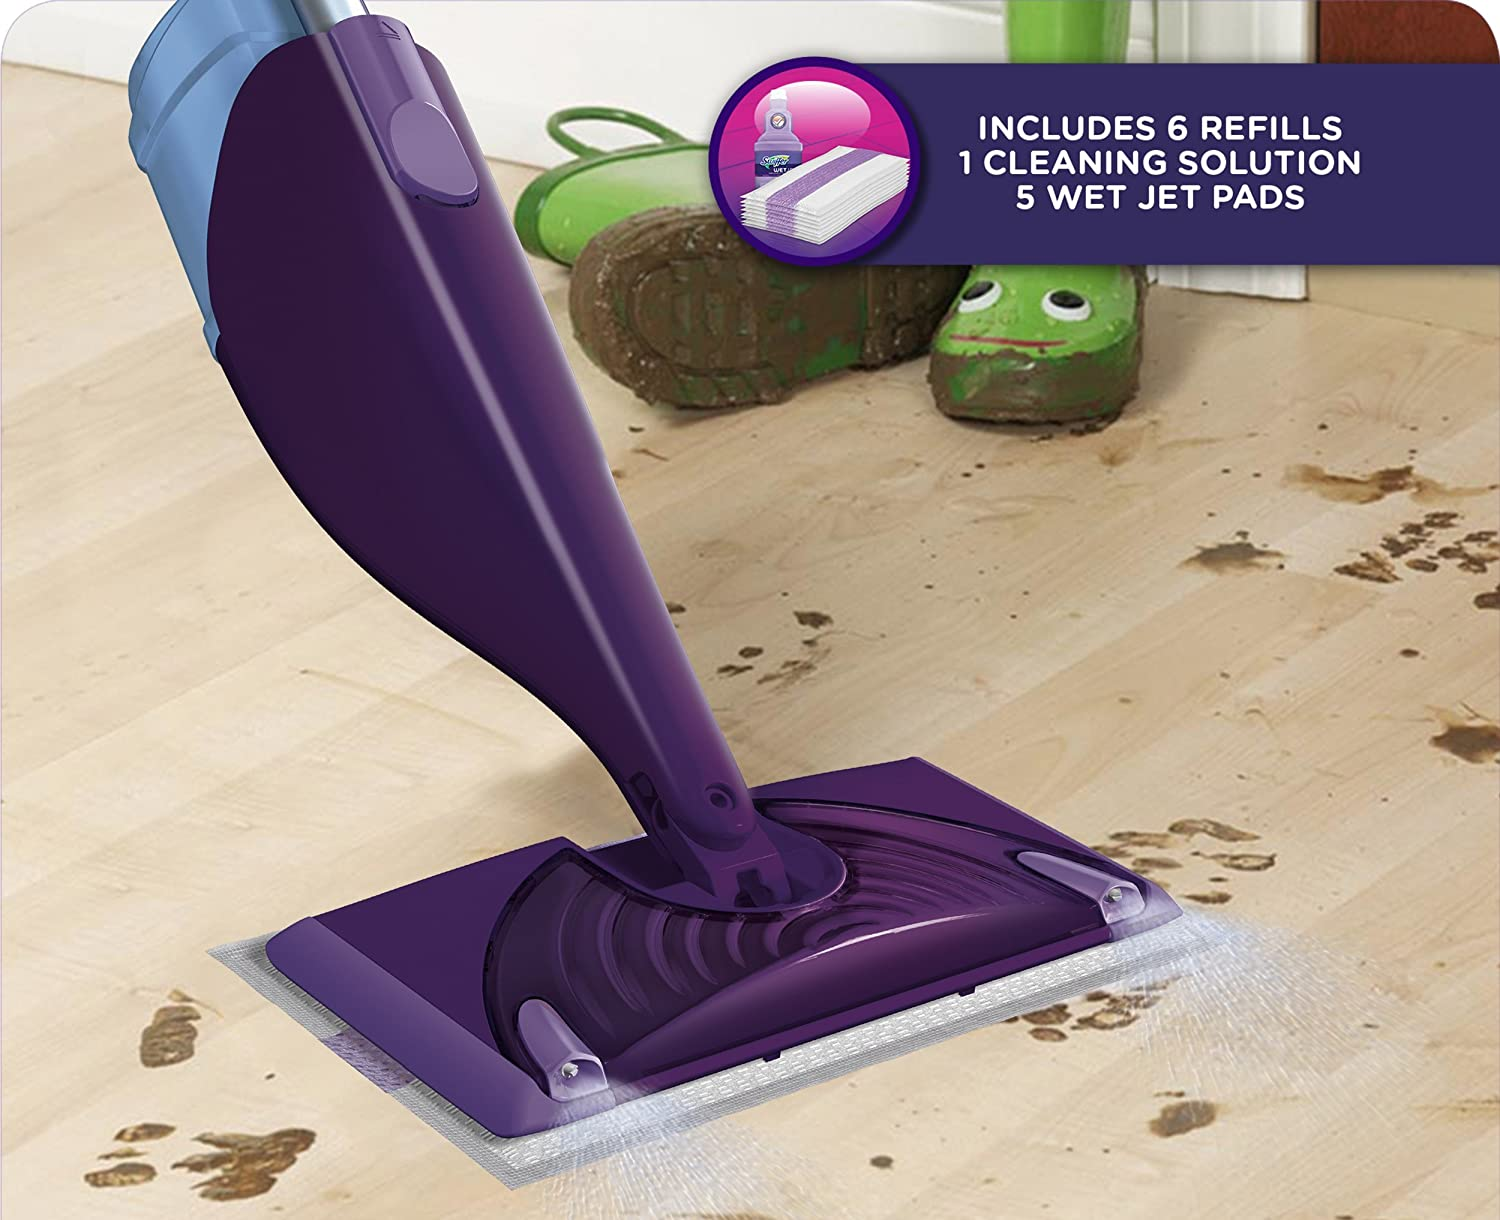 Swiffer wetjet wood floor cleaner - Amazon Com Swiffer Wetjet Hardwood And Floor Spray Mop Cleaner Starter Kit Includes 1 Power Mop 5 Pads Cleaner Solution Batteries Health Personal